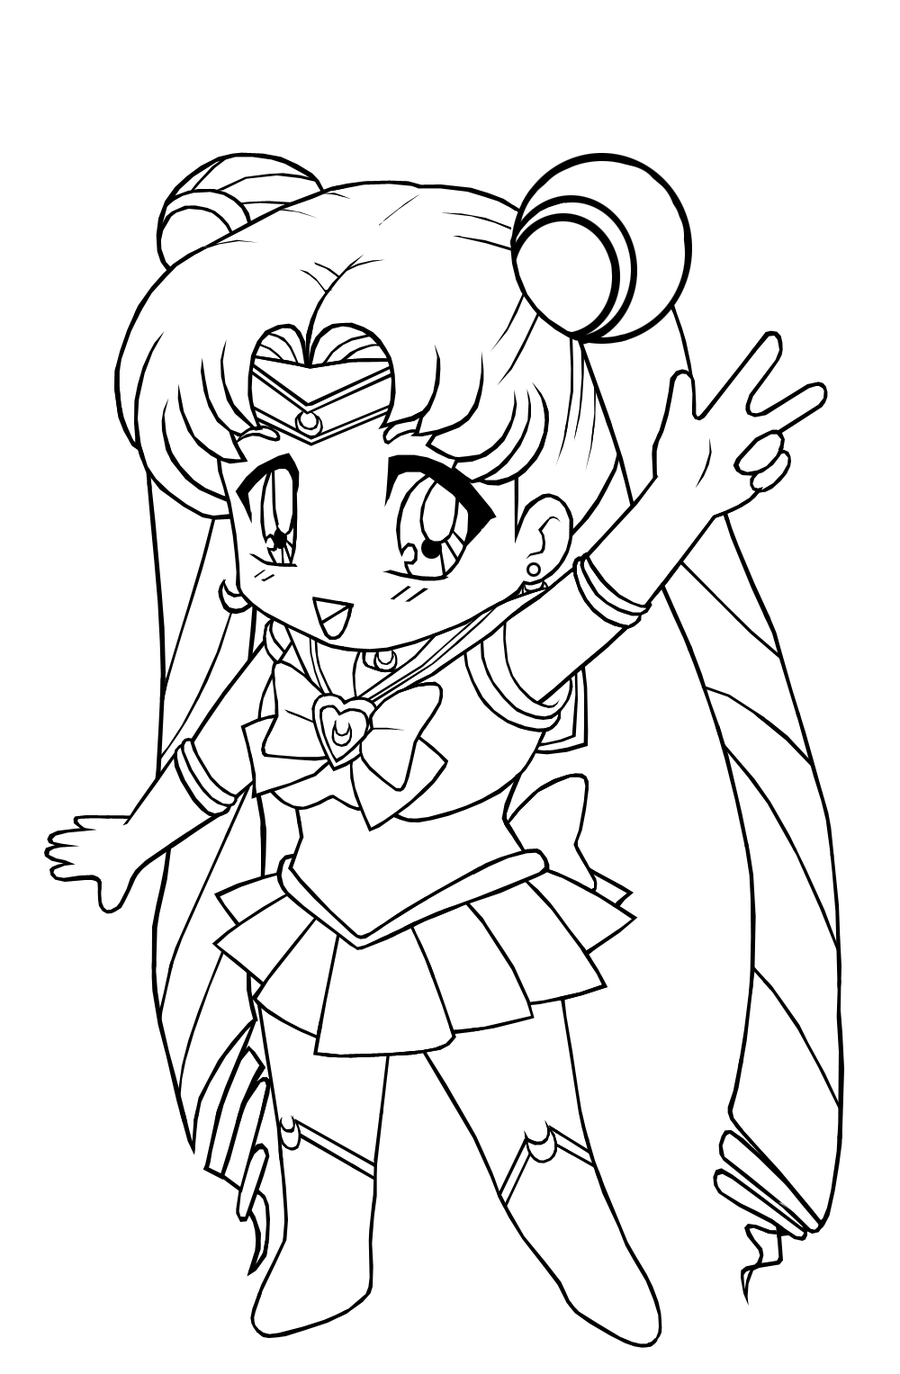 Coloring pages to print for girls - Coloring Pages For Girls Kids Anime Girl Coloring Pages To Print Girls Coloring Pages Barbie And Ken Coloring Pages For Girls